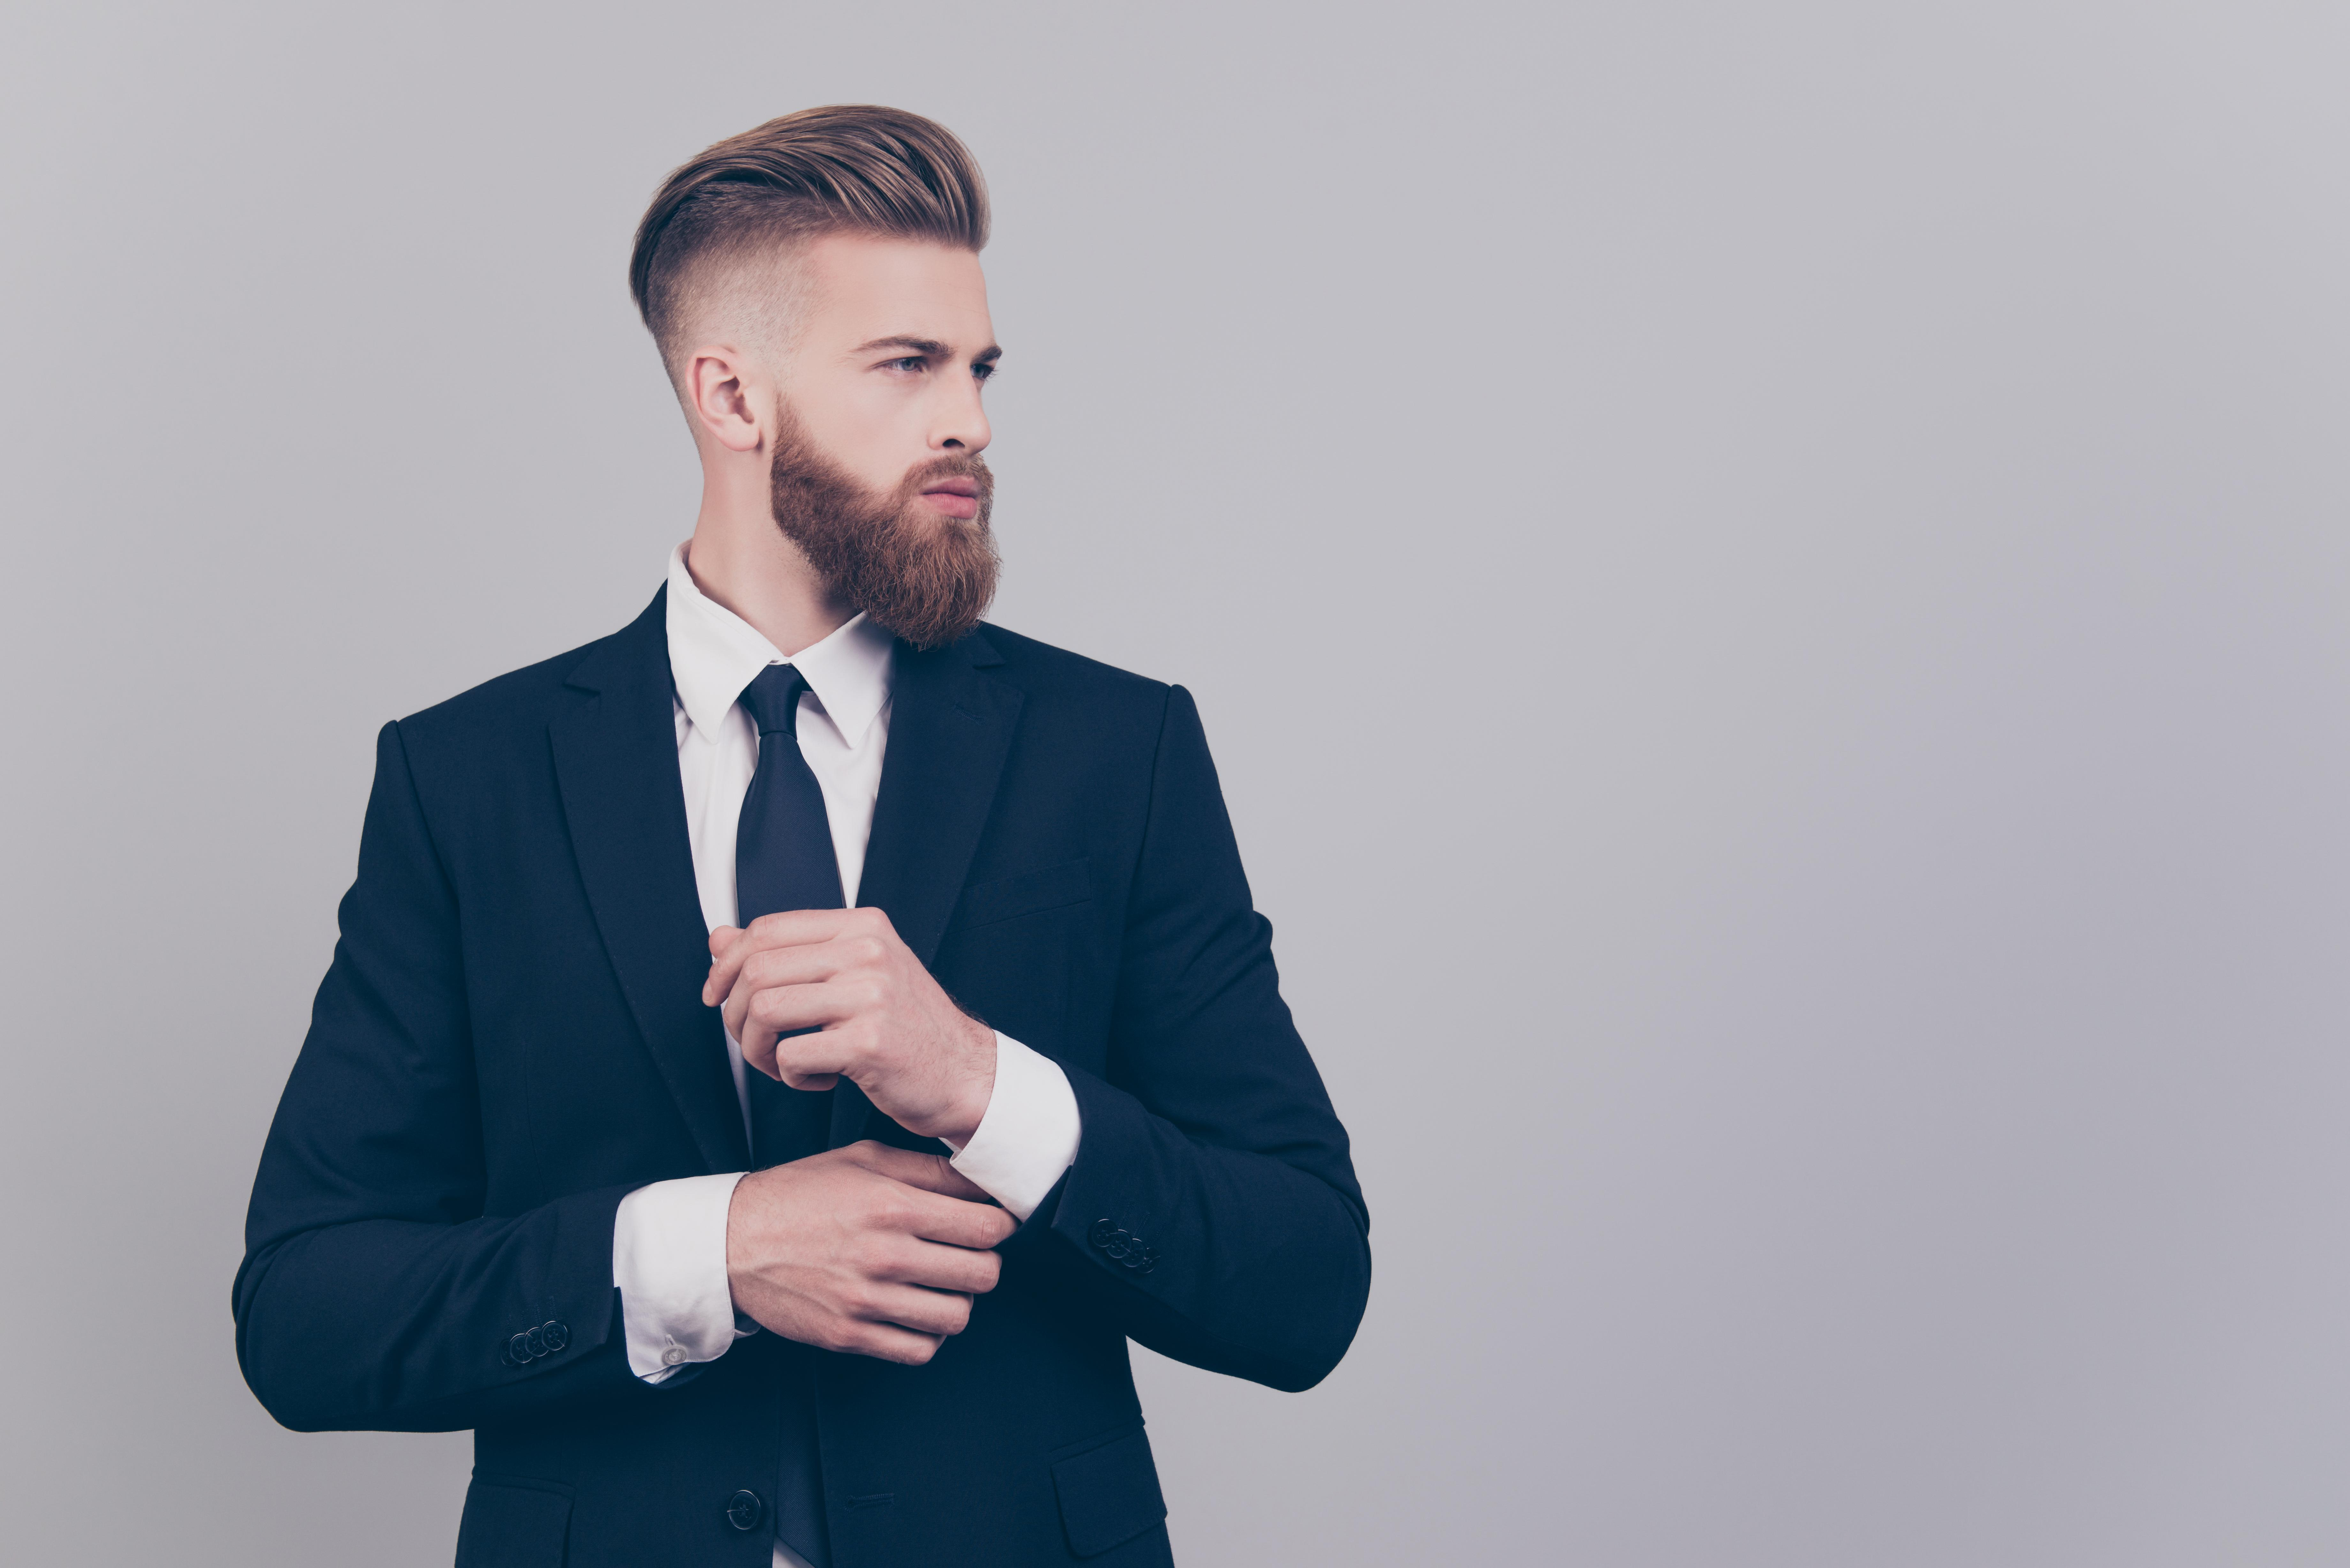 3 Ways to Maintain Your Professional Style During No-Shave November